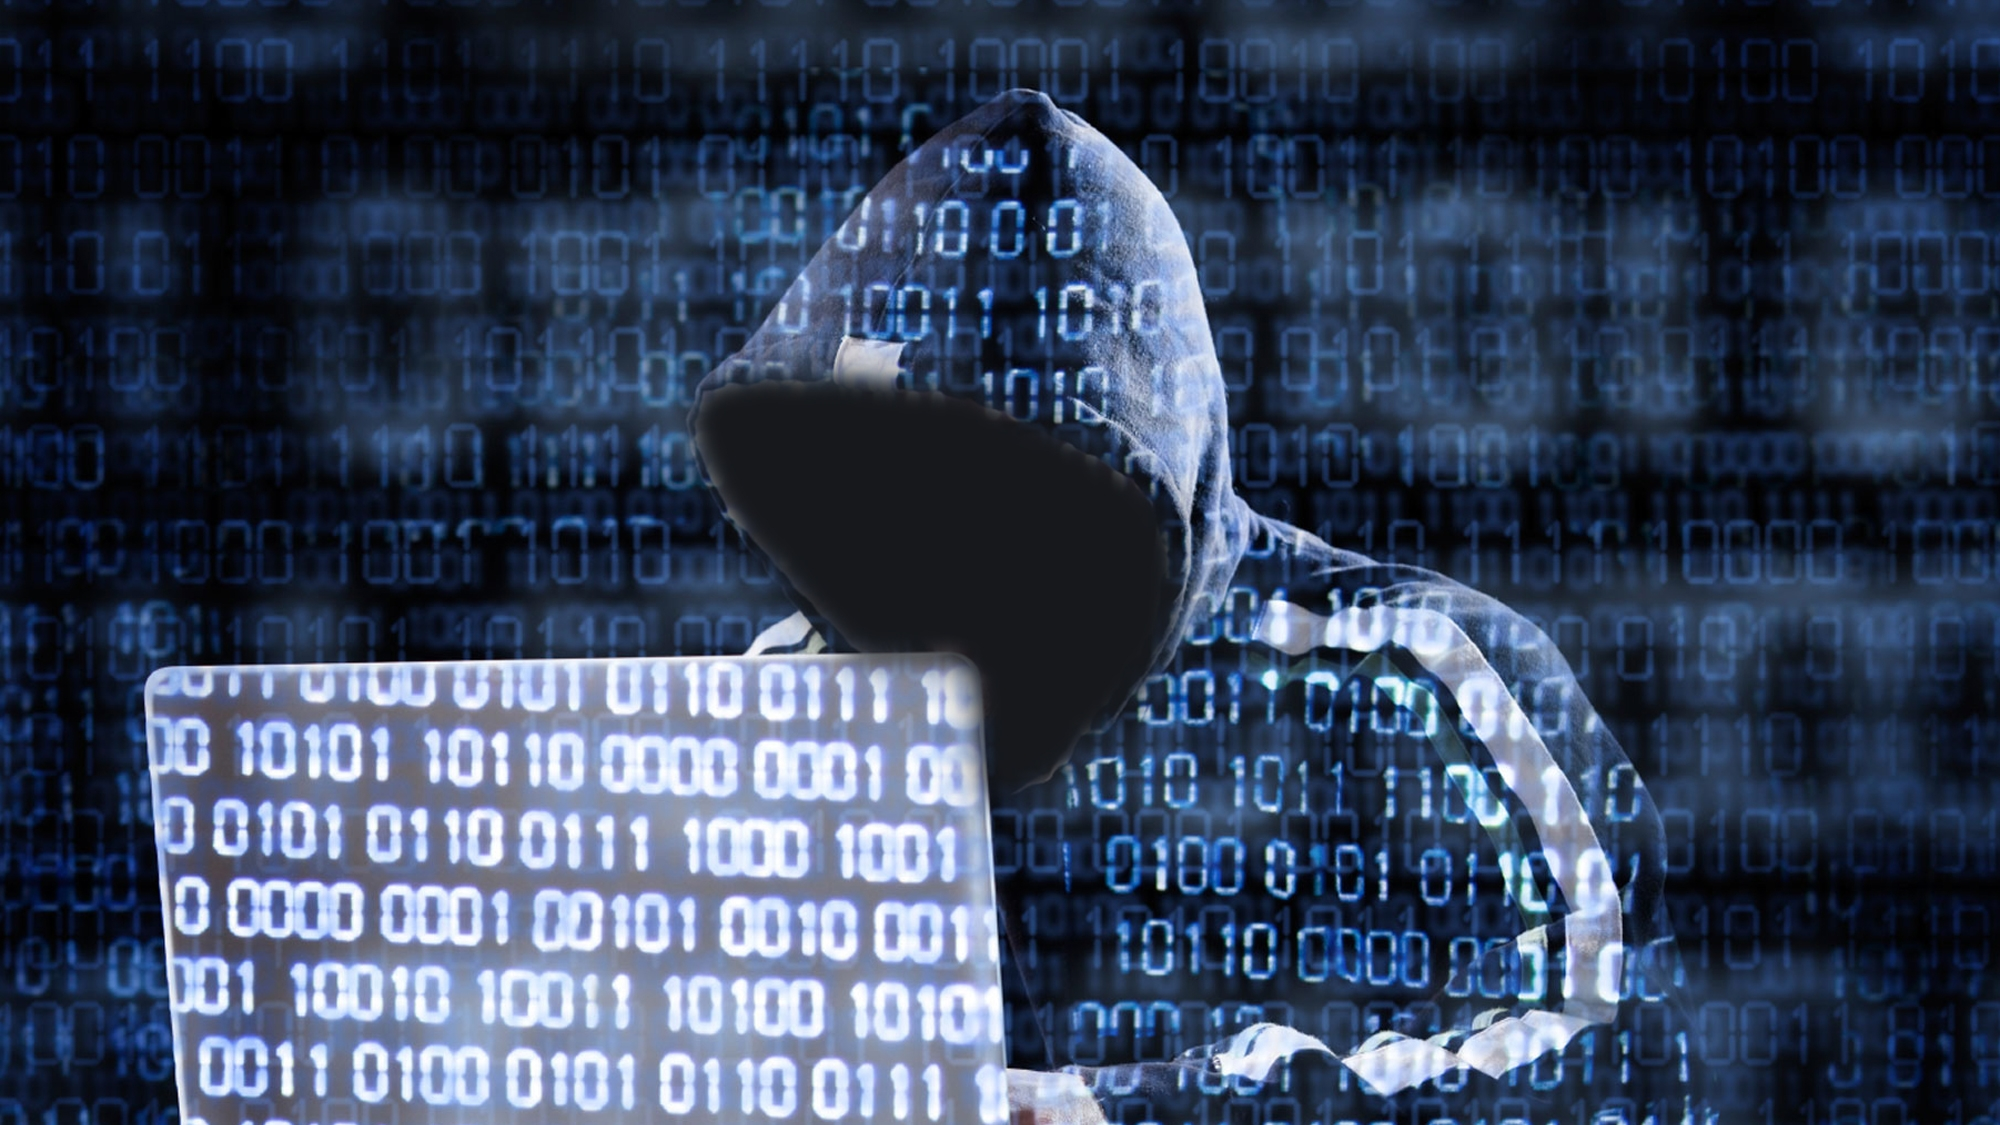 With 38 Hackings Per Second, India Comes Second Only to the US